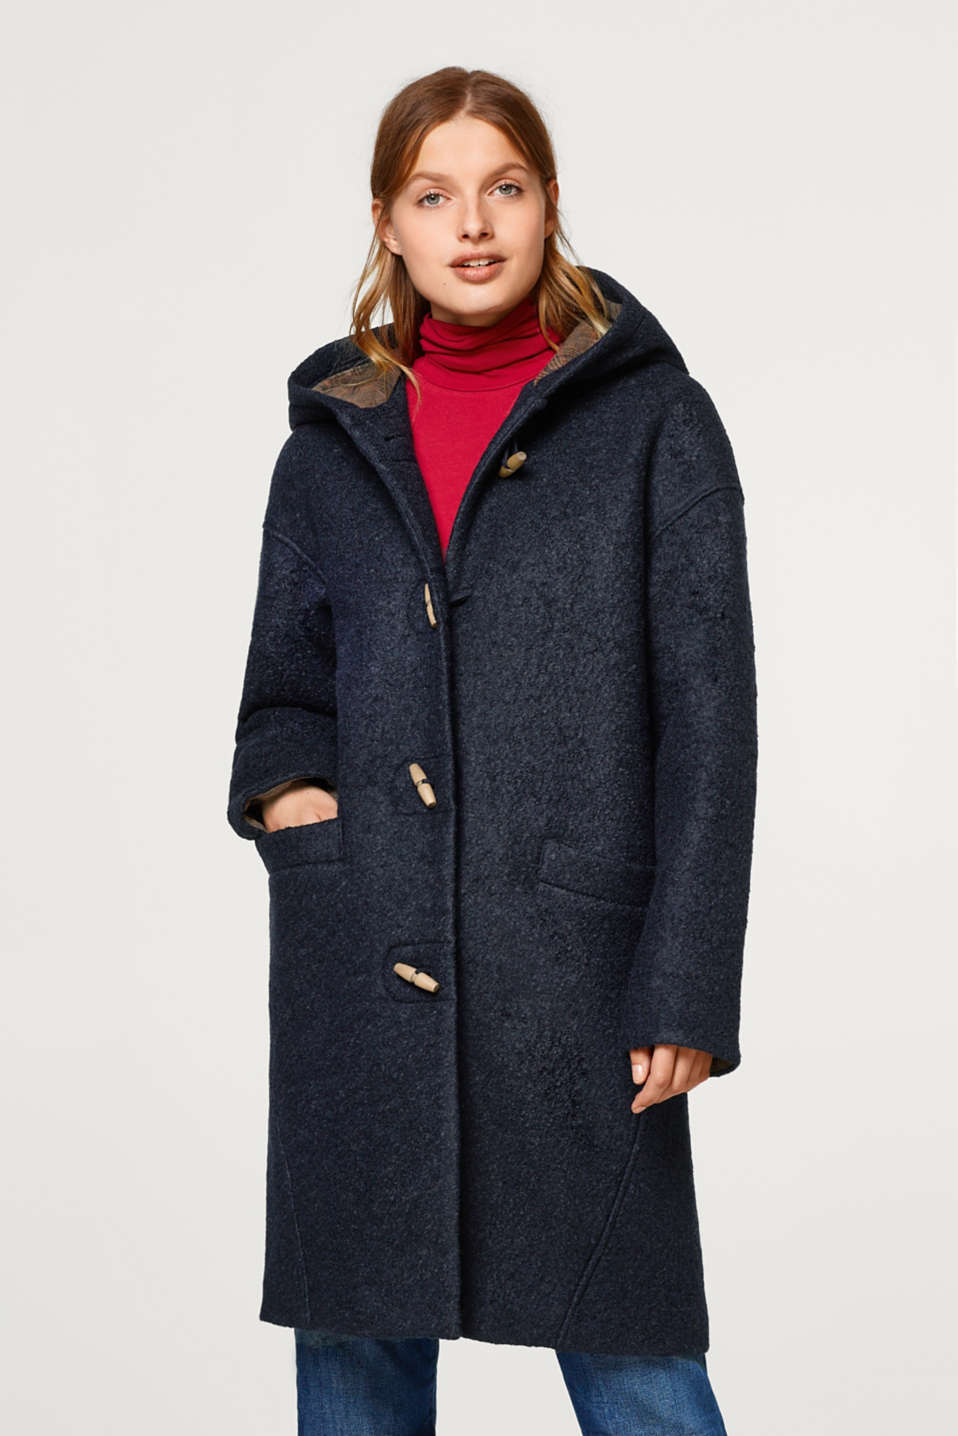 bc951fe8c8b edc - Made of blended wool  bouclé duffle coat with a hood at our ...